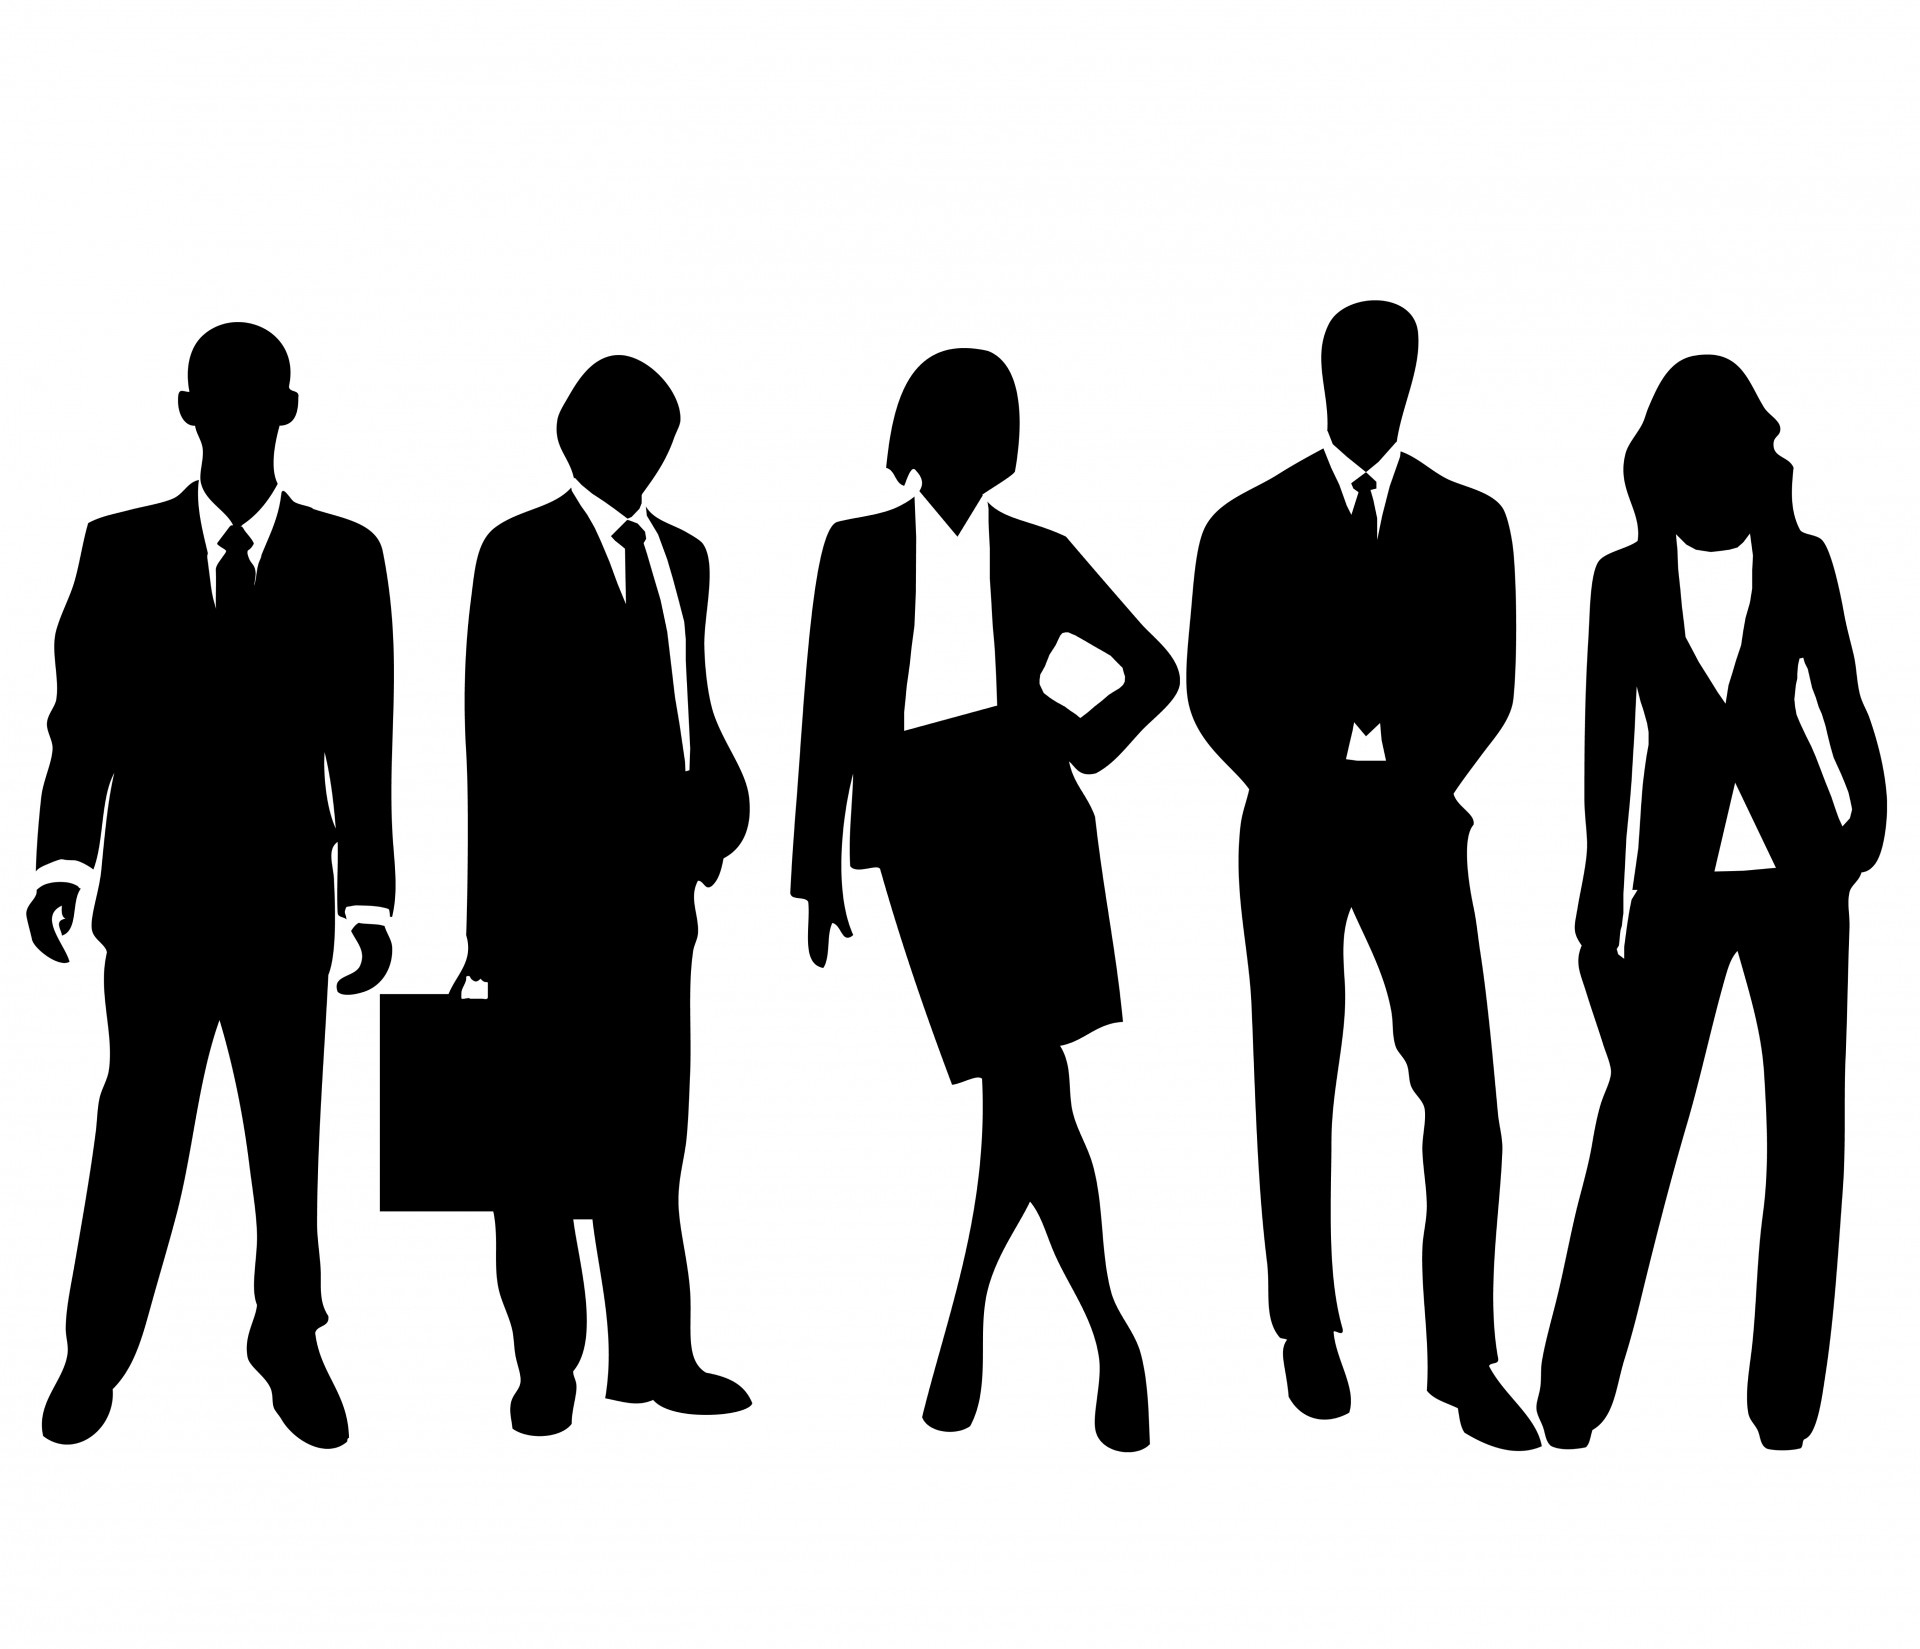 Group of Business People Silhouette